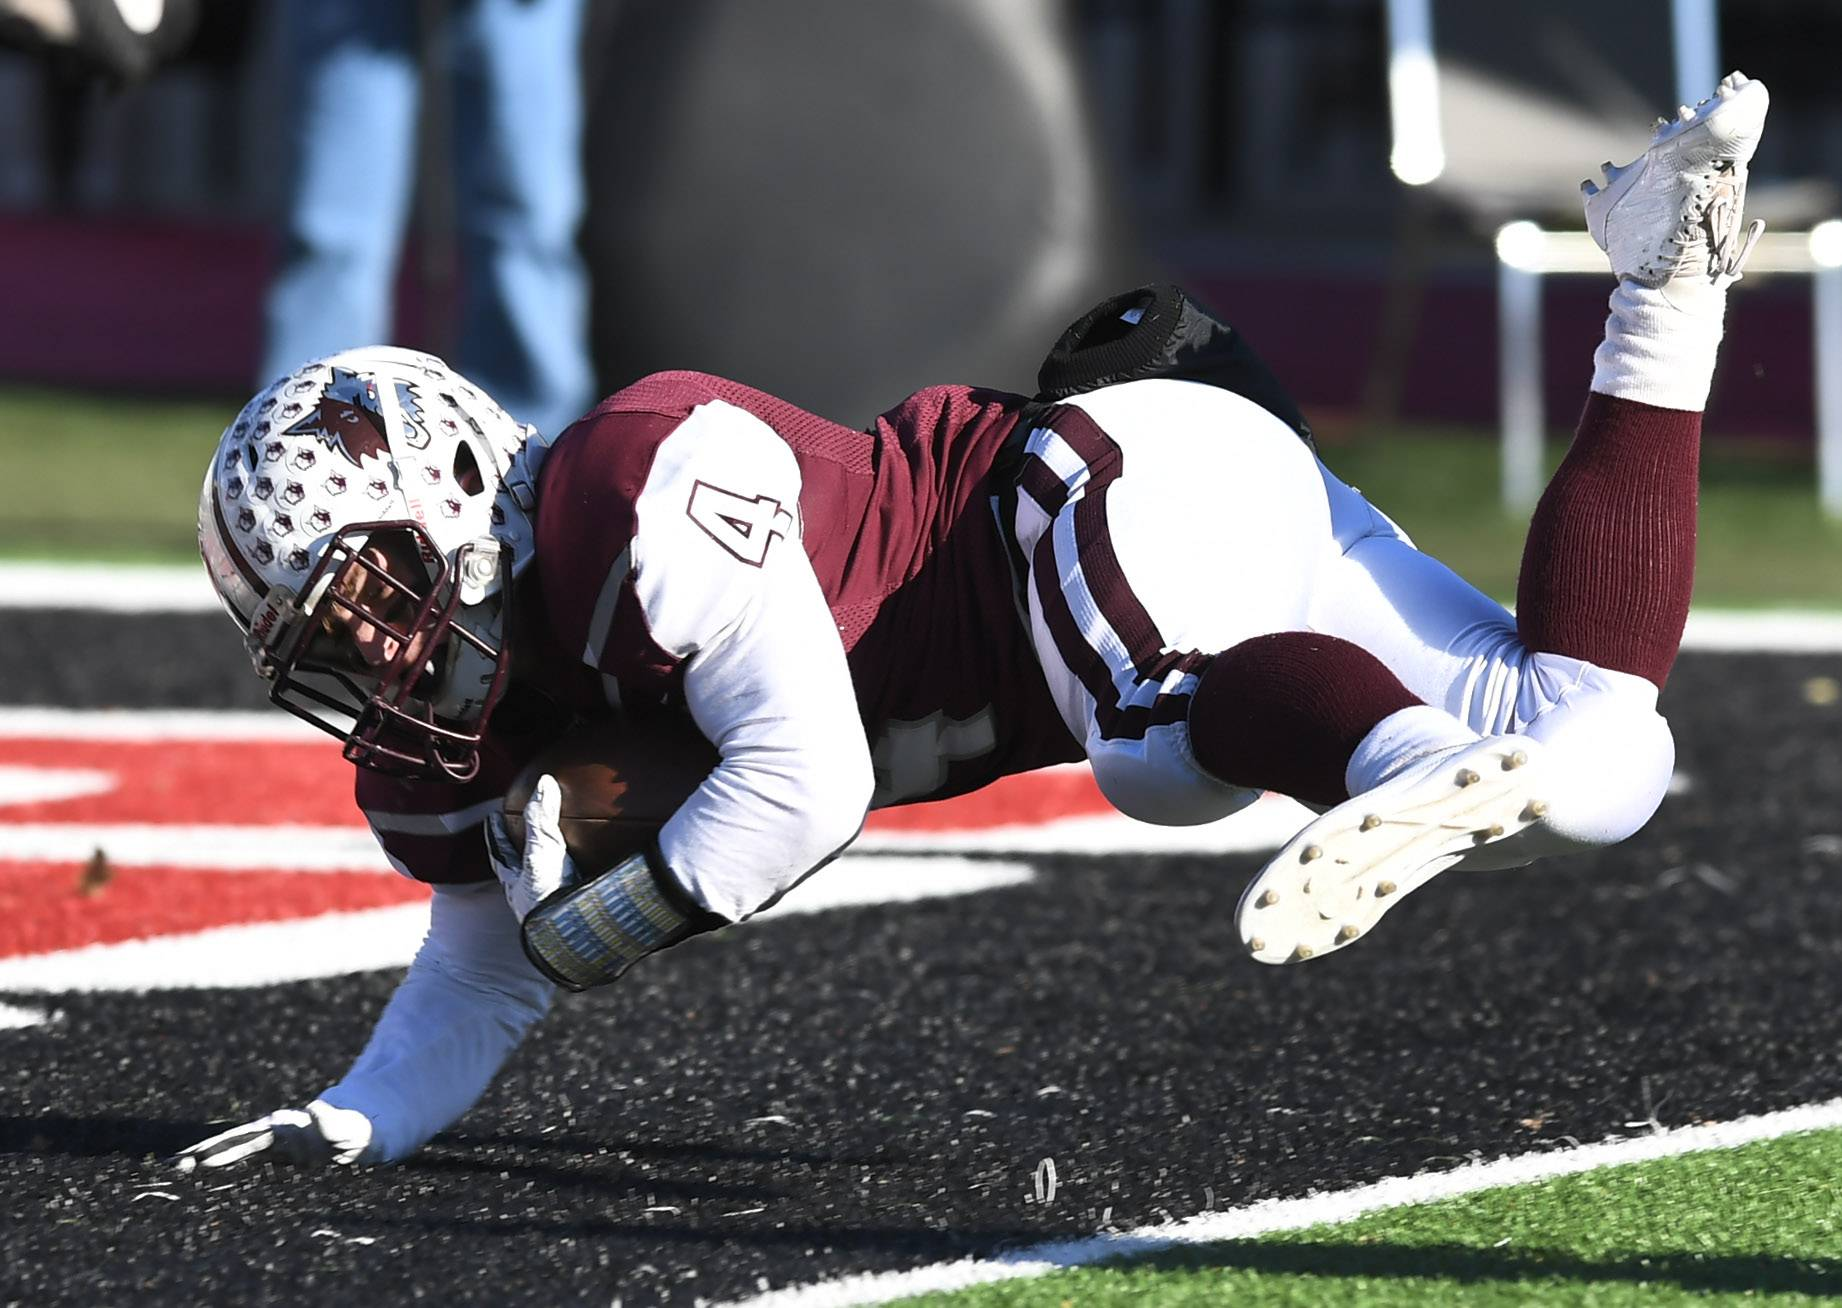 Prairie Ridge's Jackson Willis lands in the end zone for a first-quarter touchdown against Nazareth during the Class 6A championship game at Huskie Stadium in DeKalb Saturday.